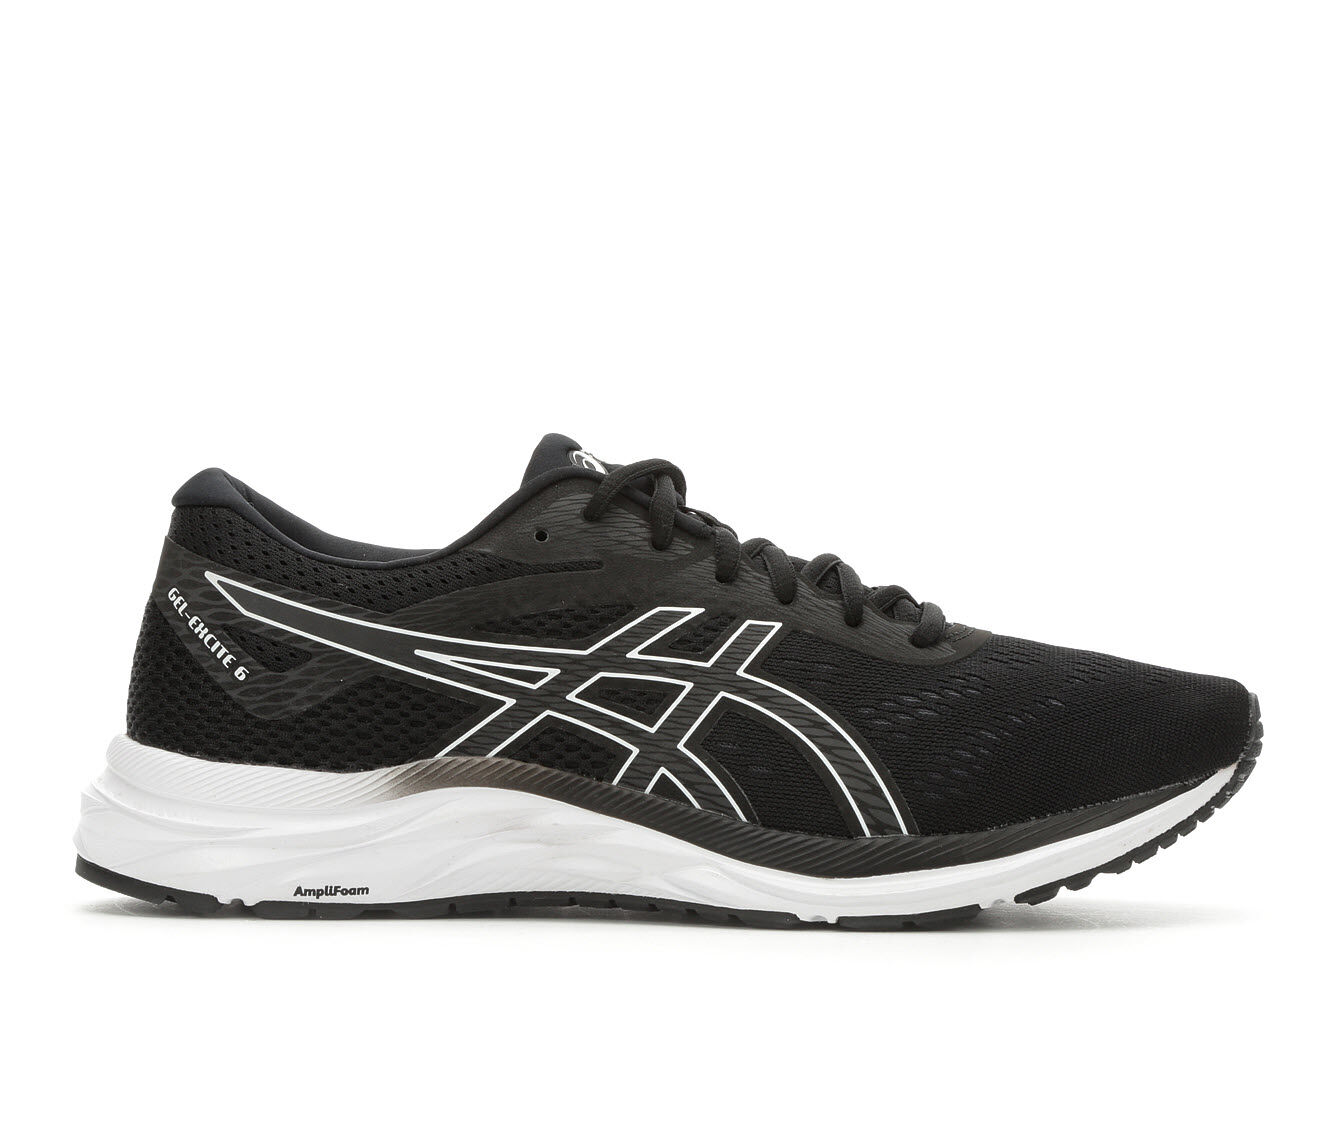 Men's ASICS Gel Excite 6 Running Shoes Blk/Wht/Gry